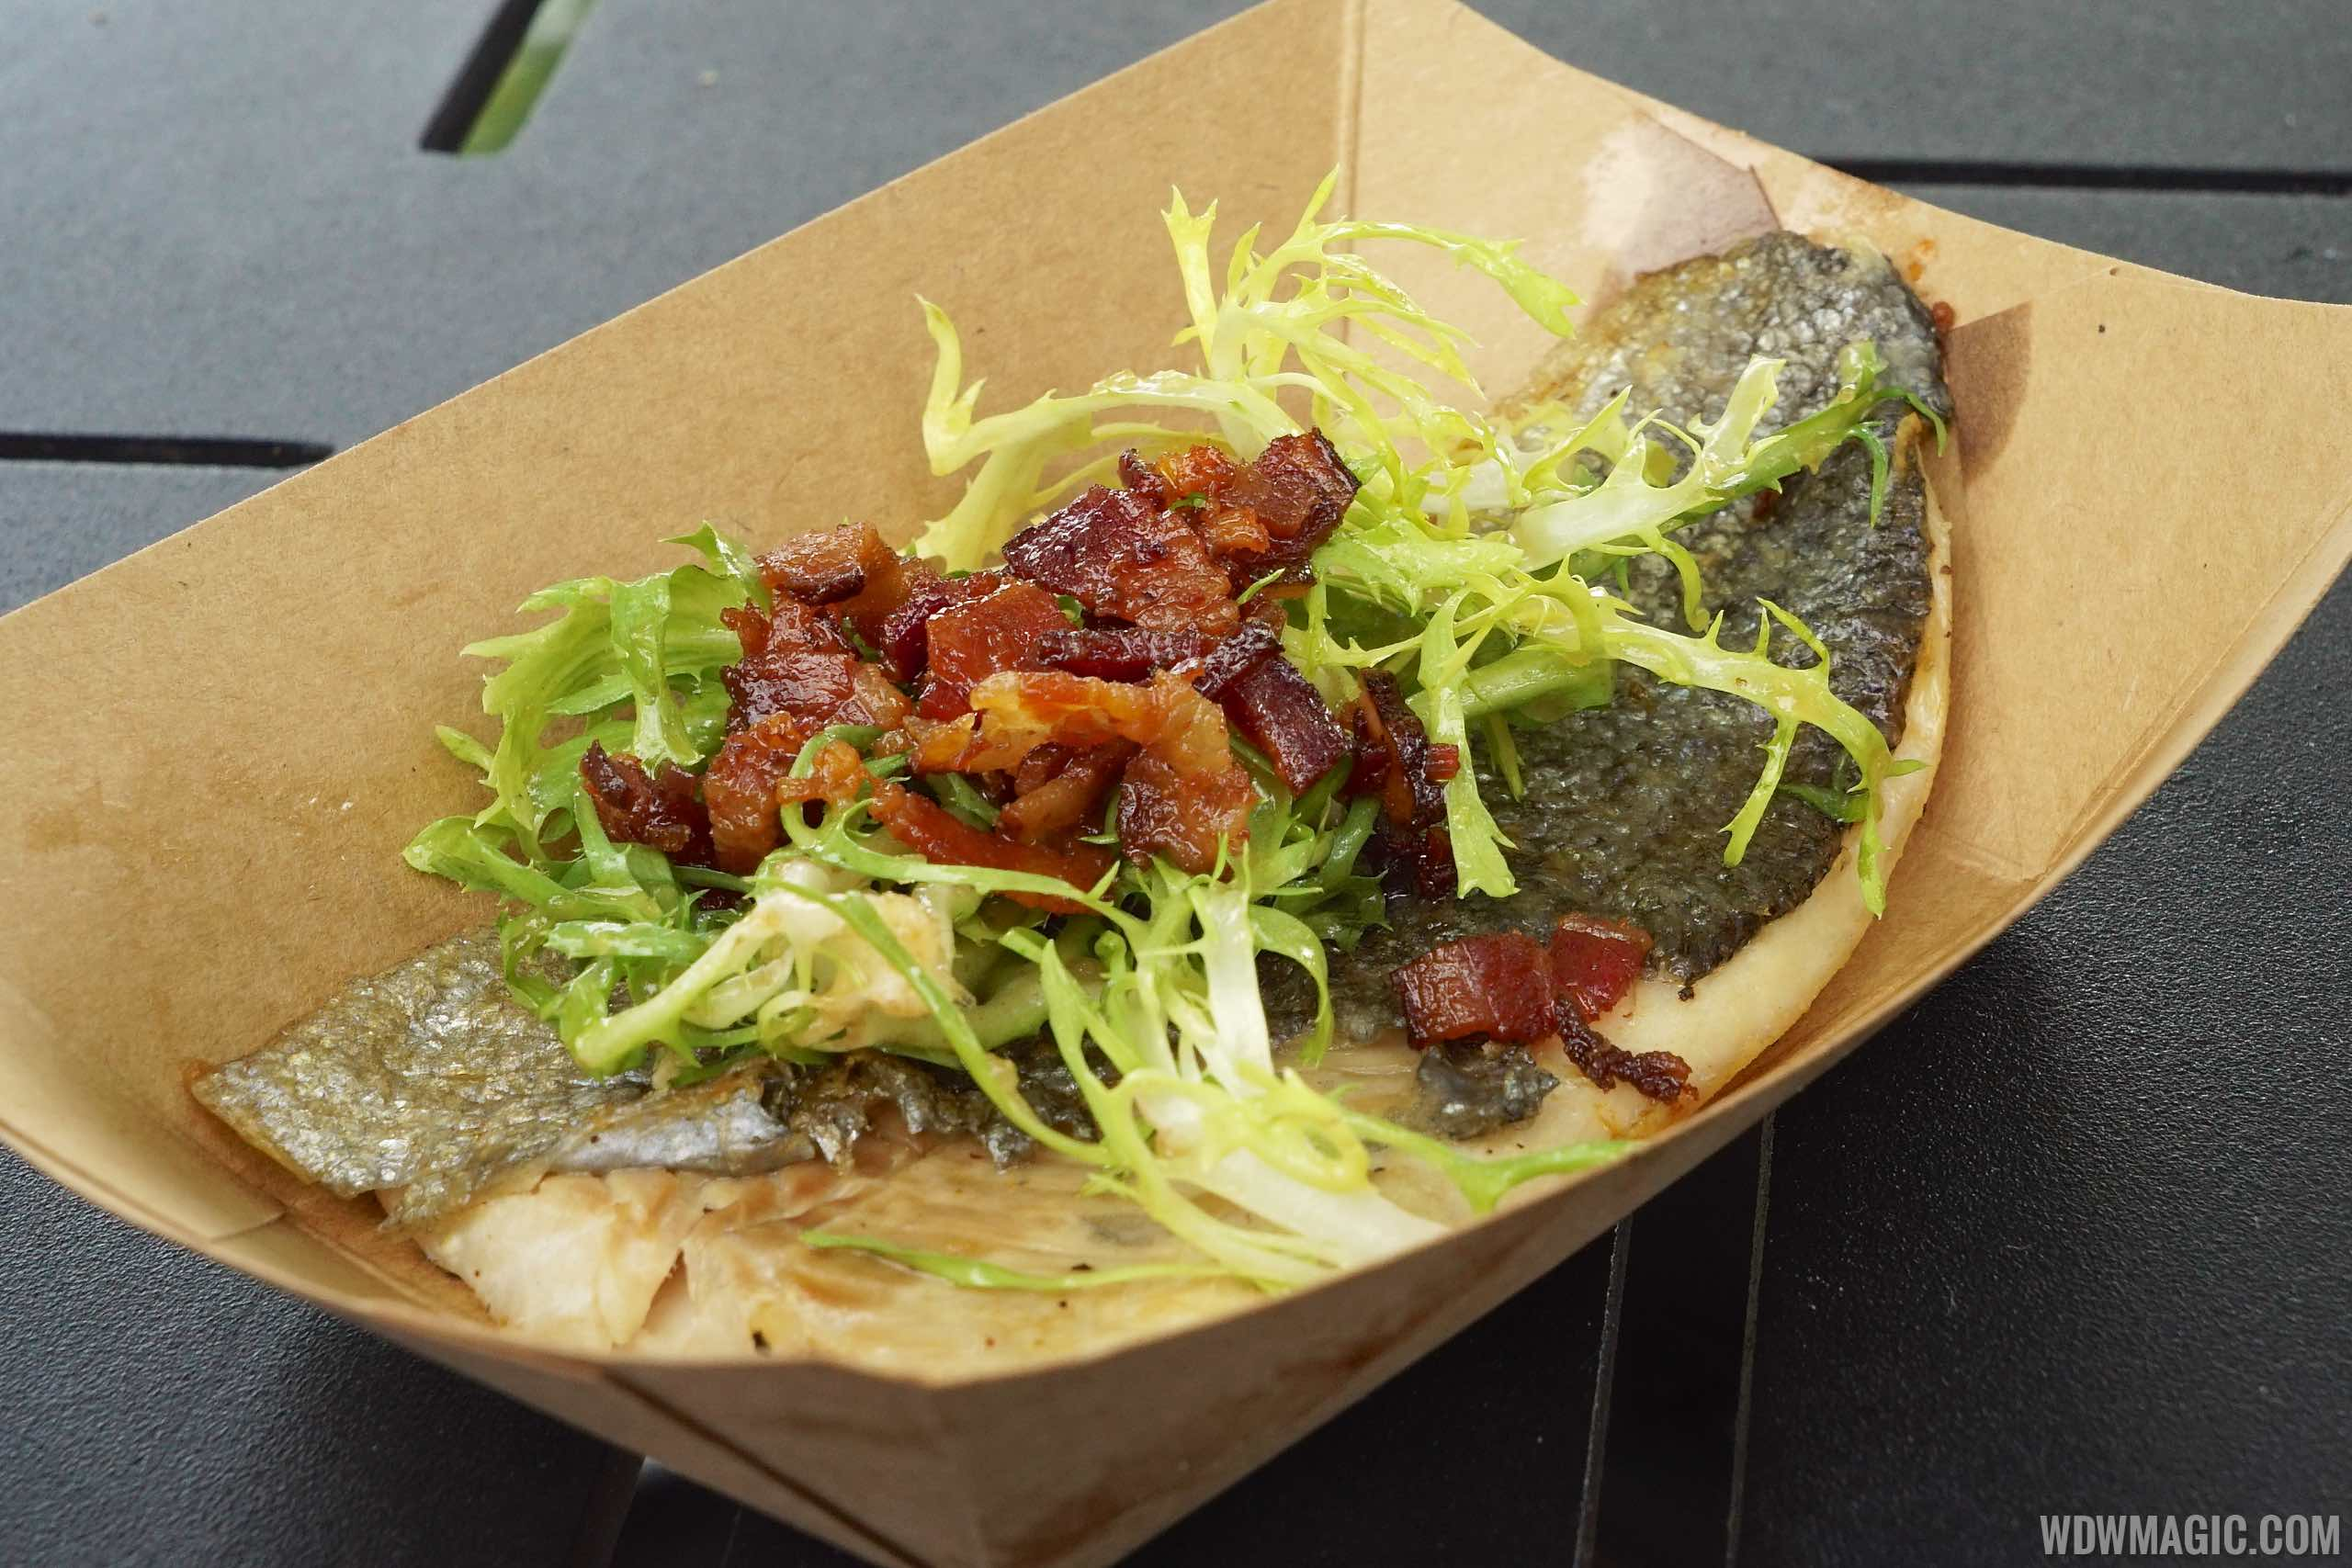 Canada - Seared rainbow trout with bacon, frisee and maple Minus 8 Vinaigrette